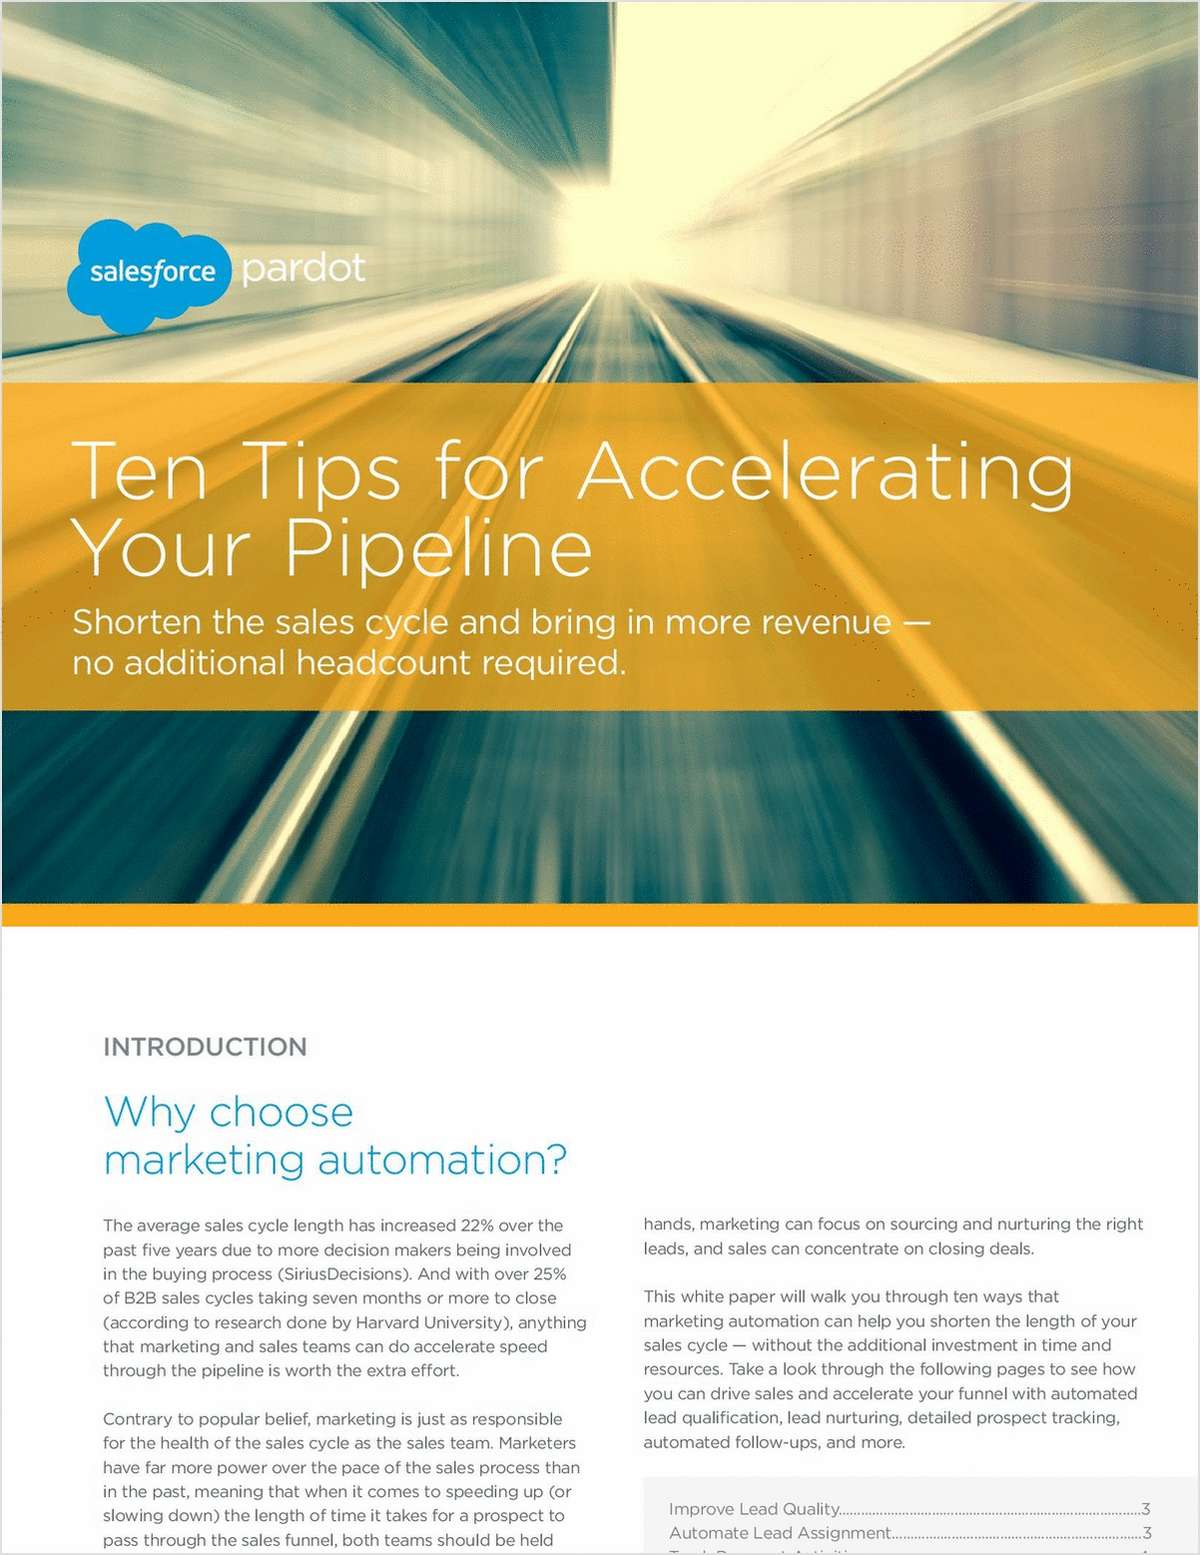 Ten Tips for Accelerating Your Pipeline